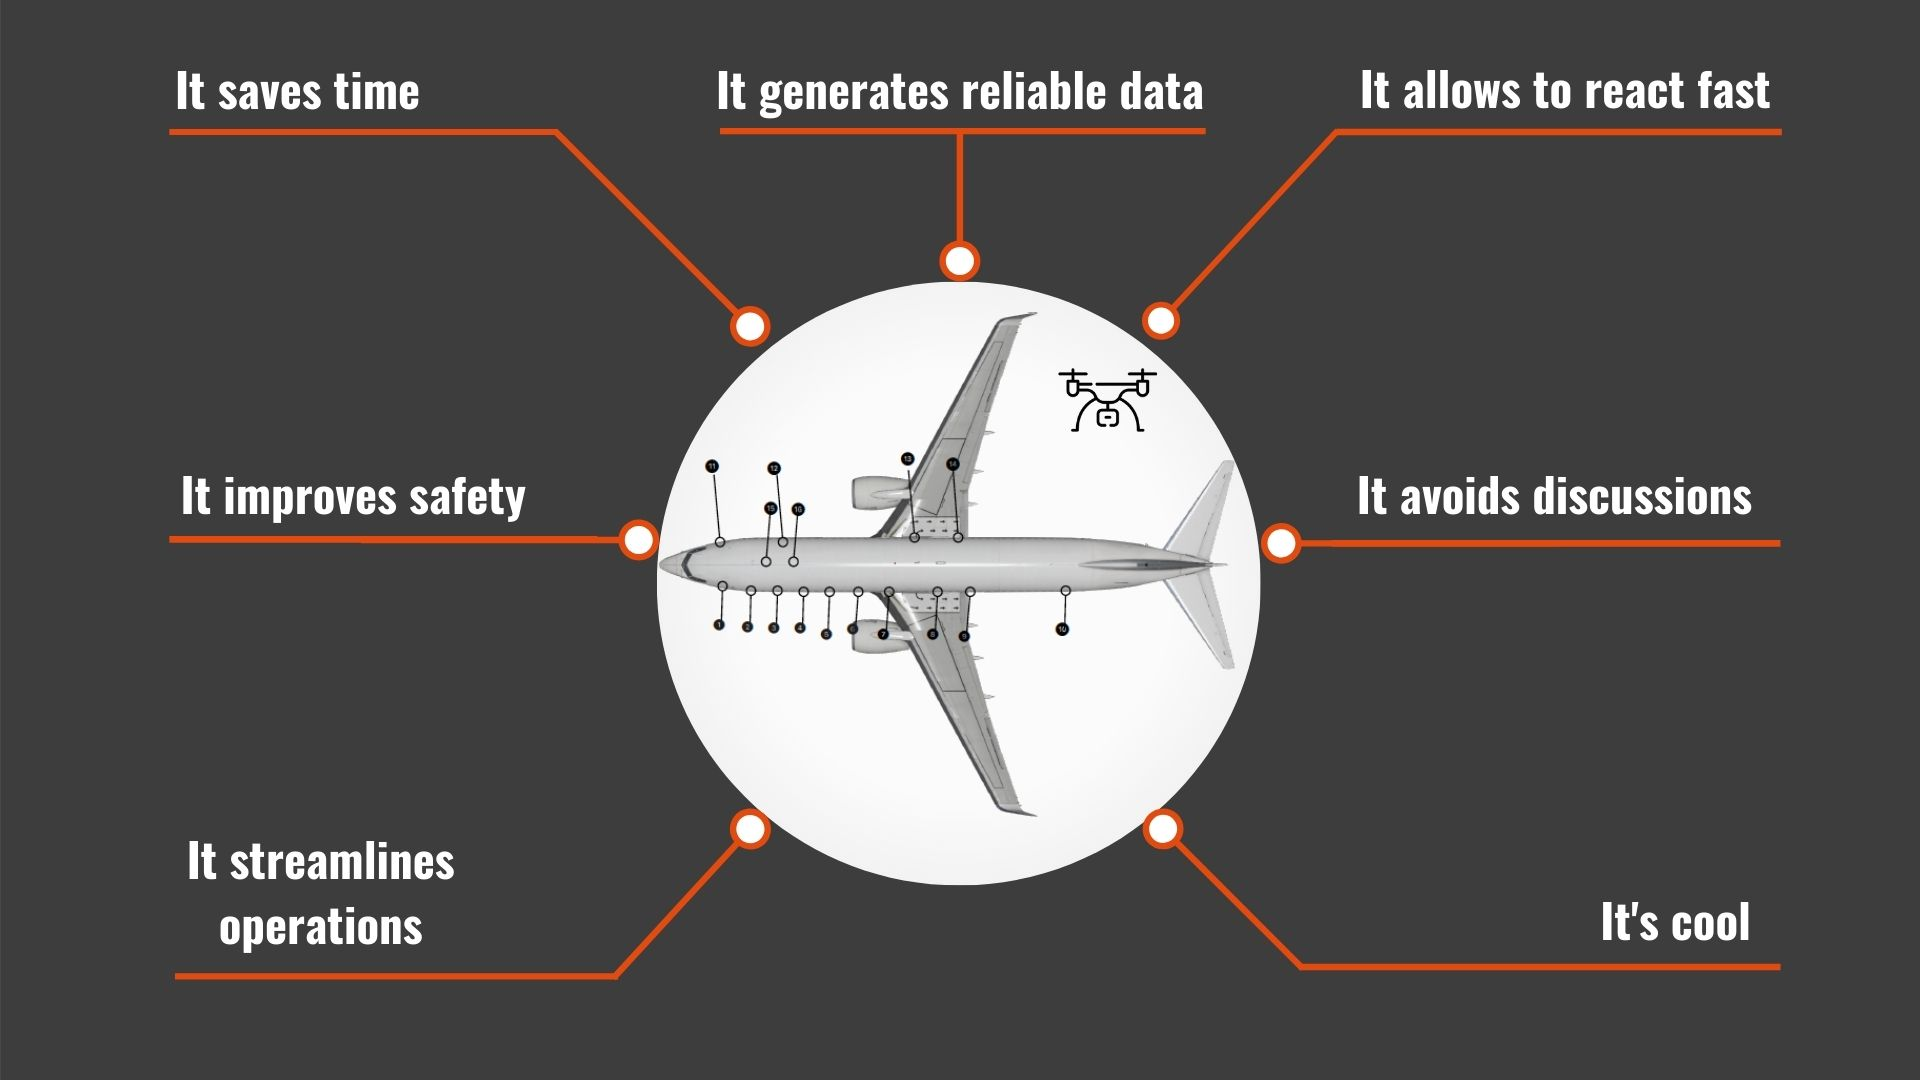 7 reasons why aircraft maintenance technicians should use drones